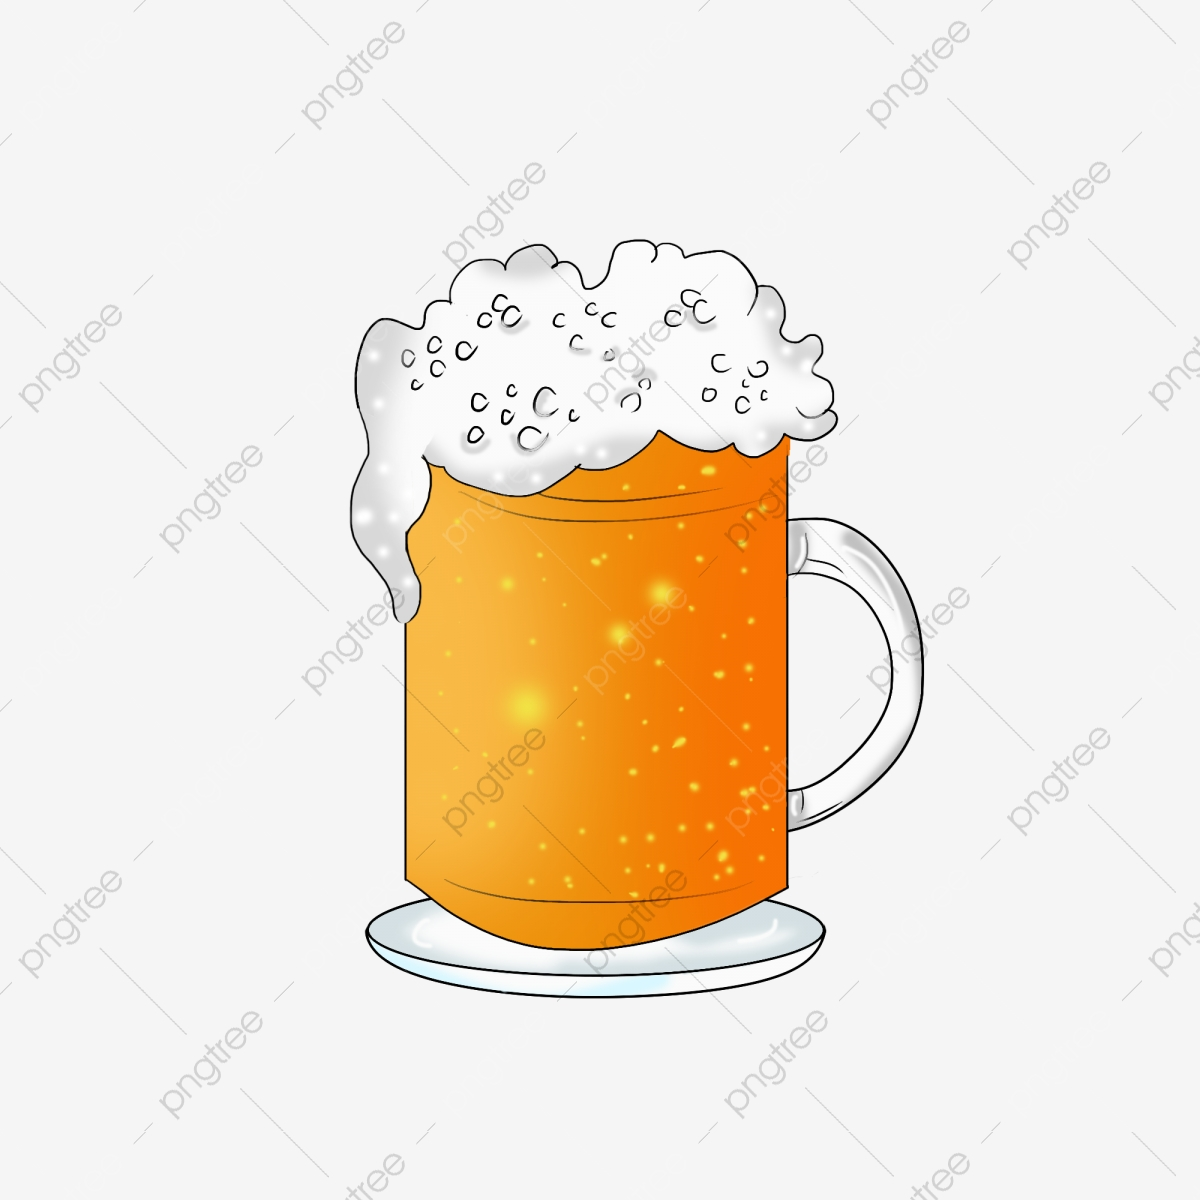 Beer Mug Png Vector Psd And Clipart With Transparent Background For Free Download Pngtree